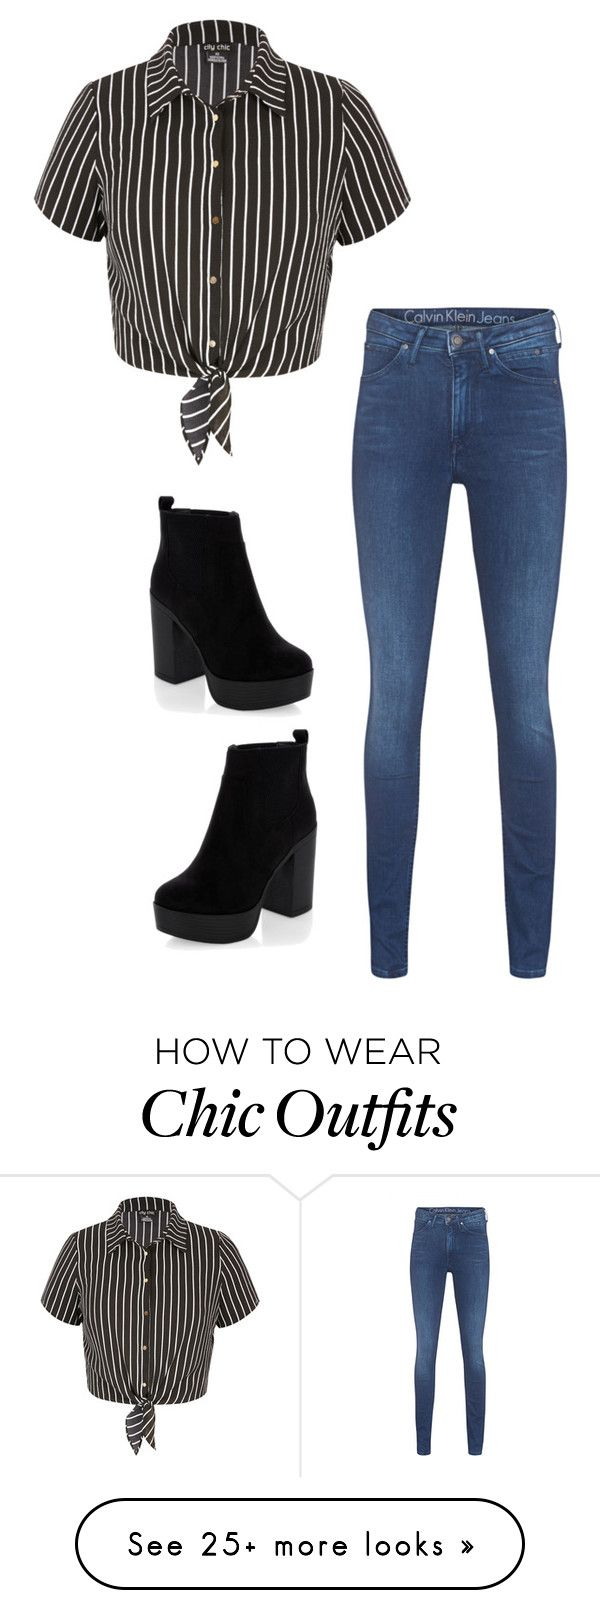 """Untitled #526"" by skittles1324 on Polyvore featuring City Chic, Calvin Klein Jeans and New Look"